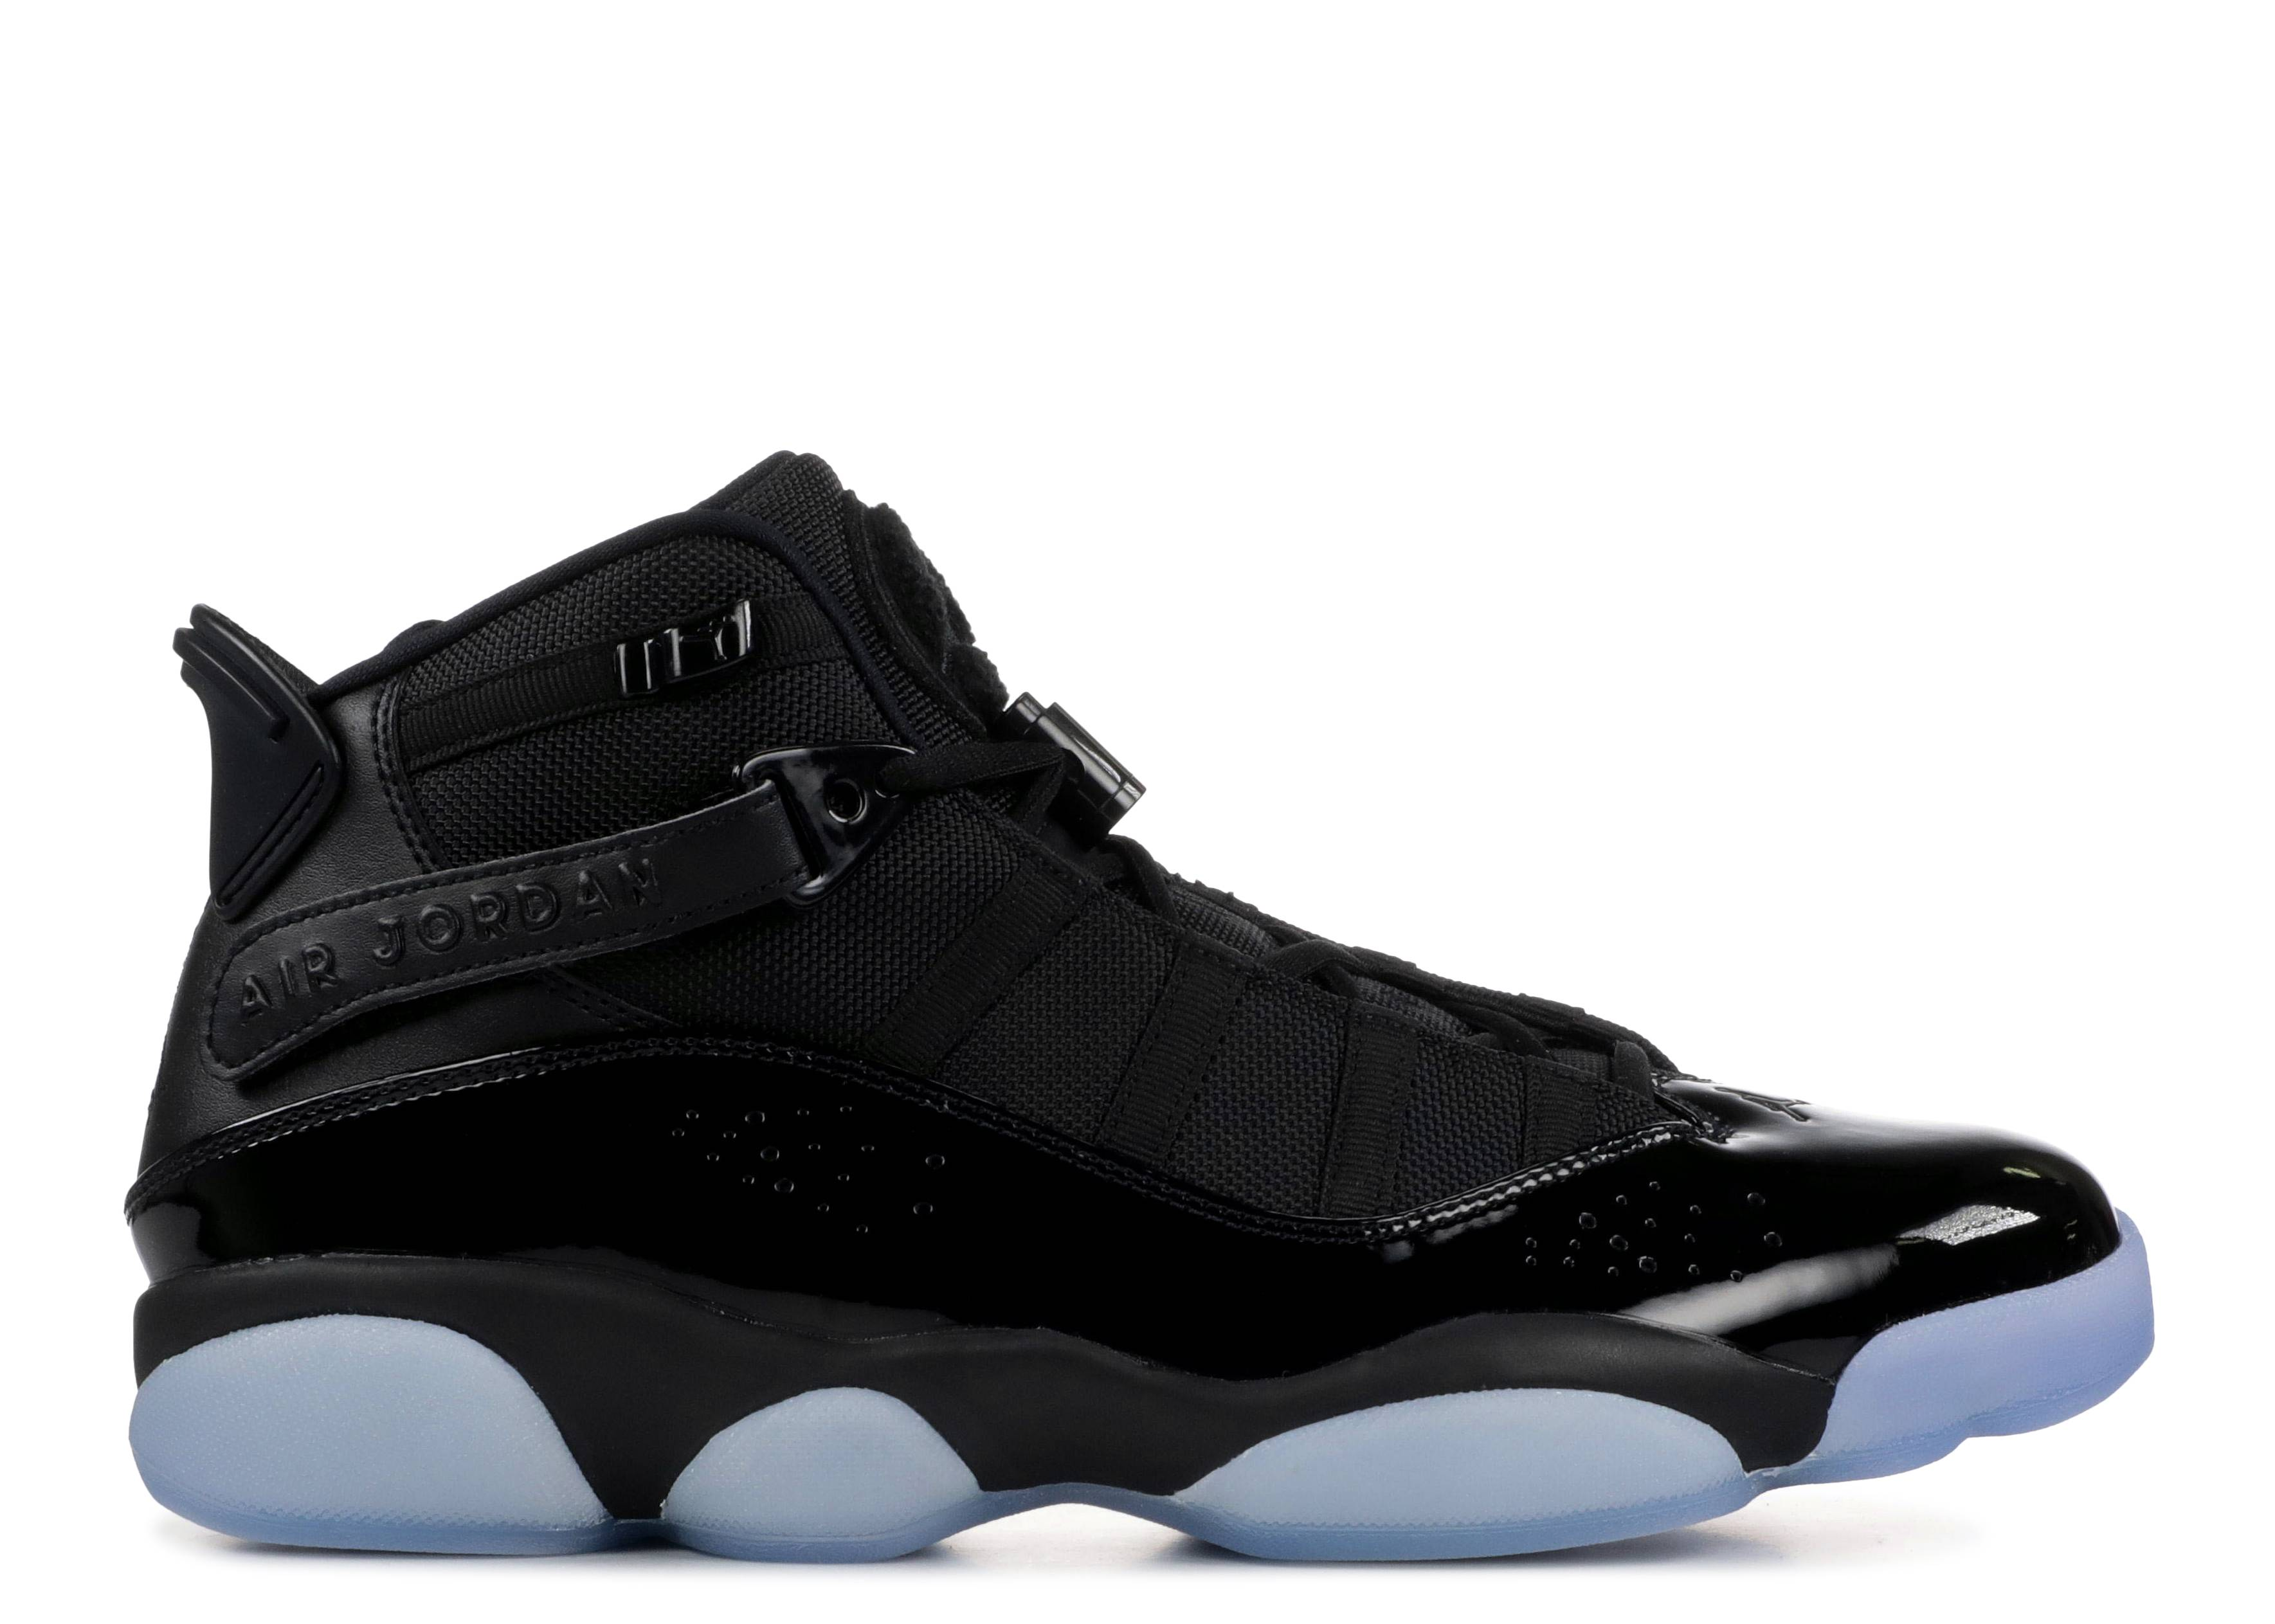 best sneakers 9ace4 75e52 jordan 6 rings